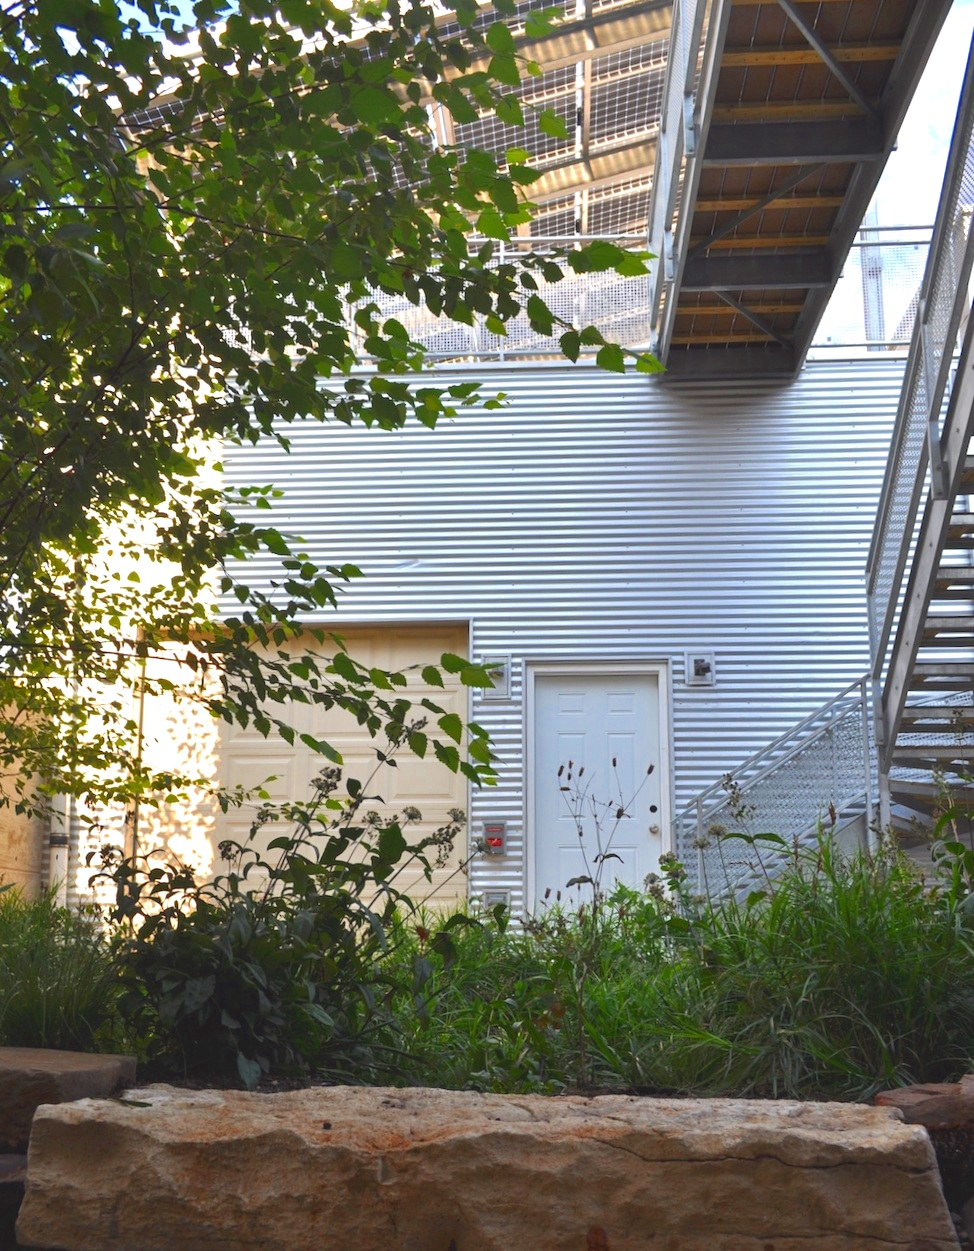 ecogardens-bucktown-adaptive-reuse-7.jpg